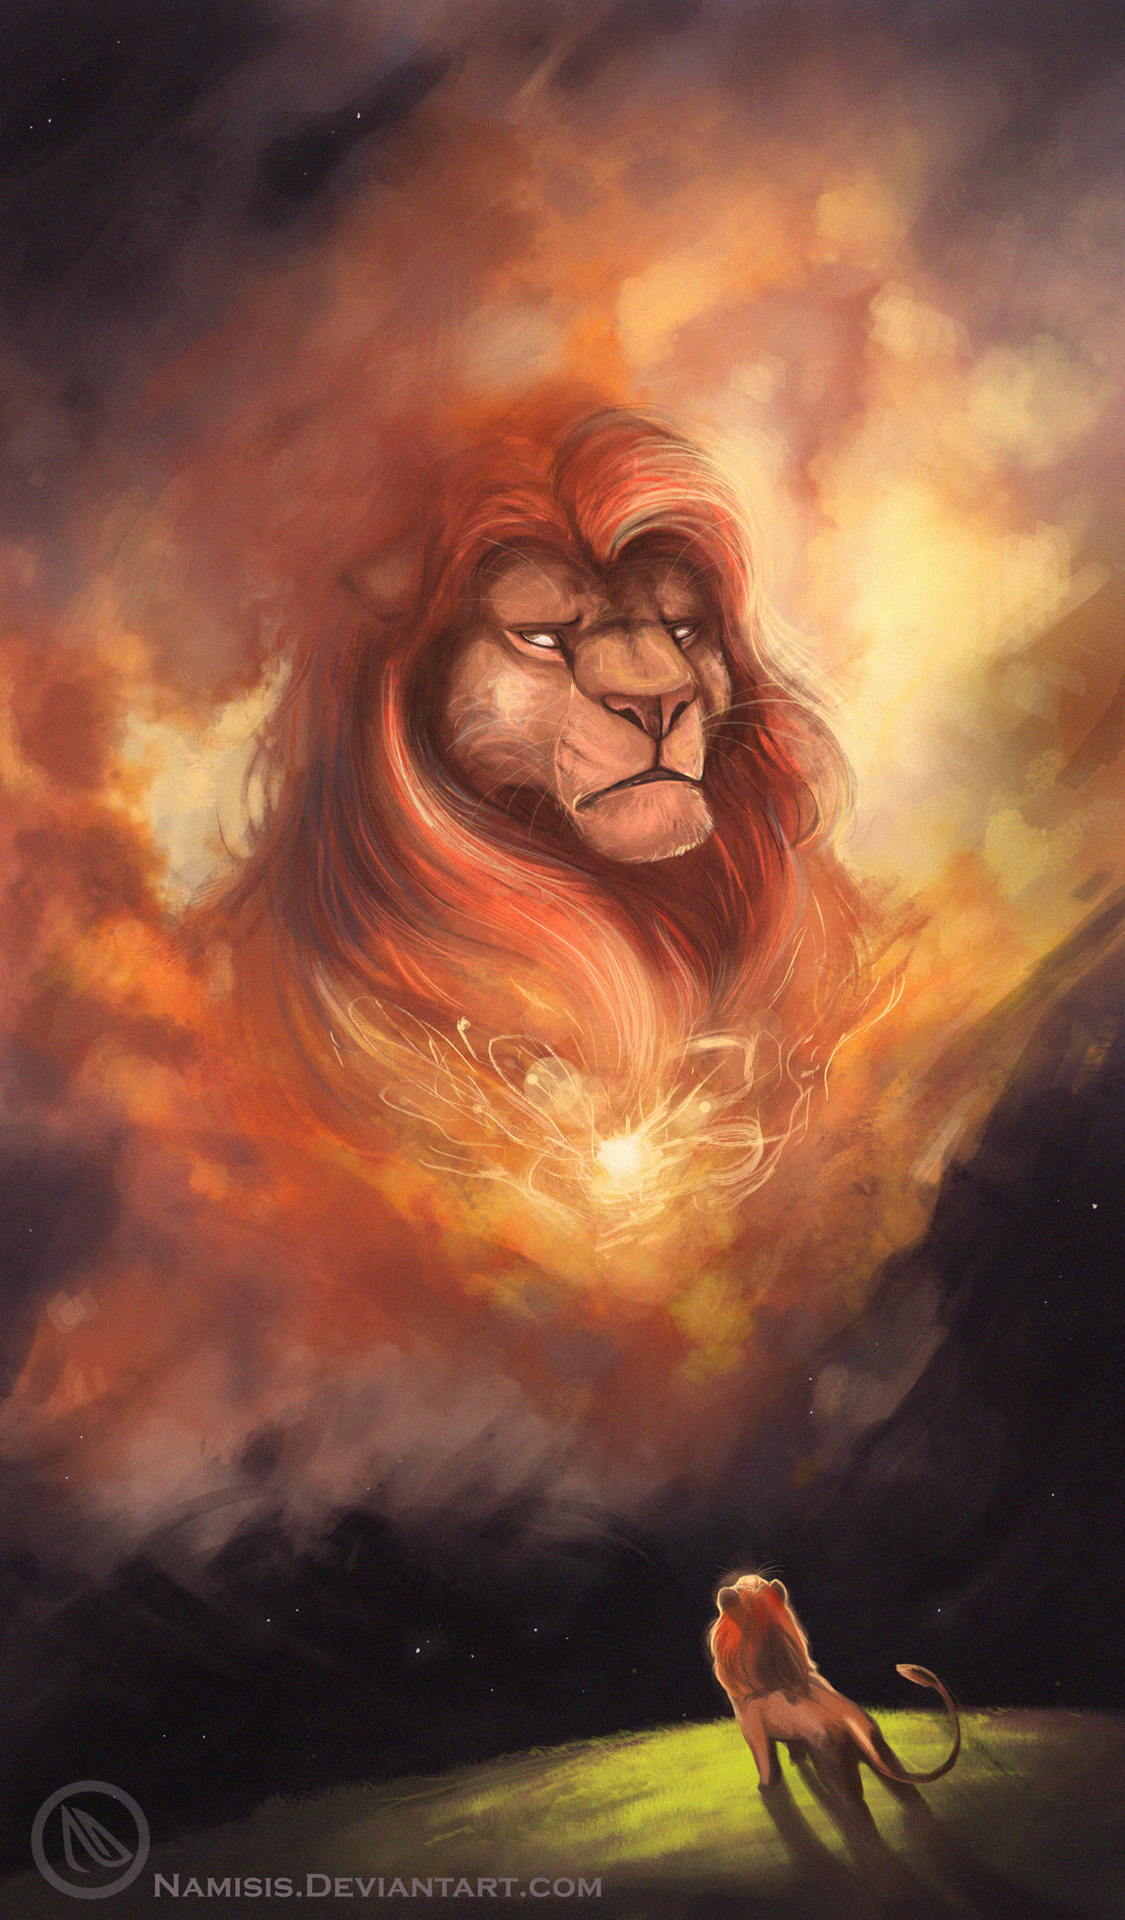 El Rey Leon Opiniones Butacas Mufasa And Simba The Lion King By Namisis Deviantart